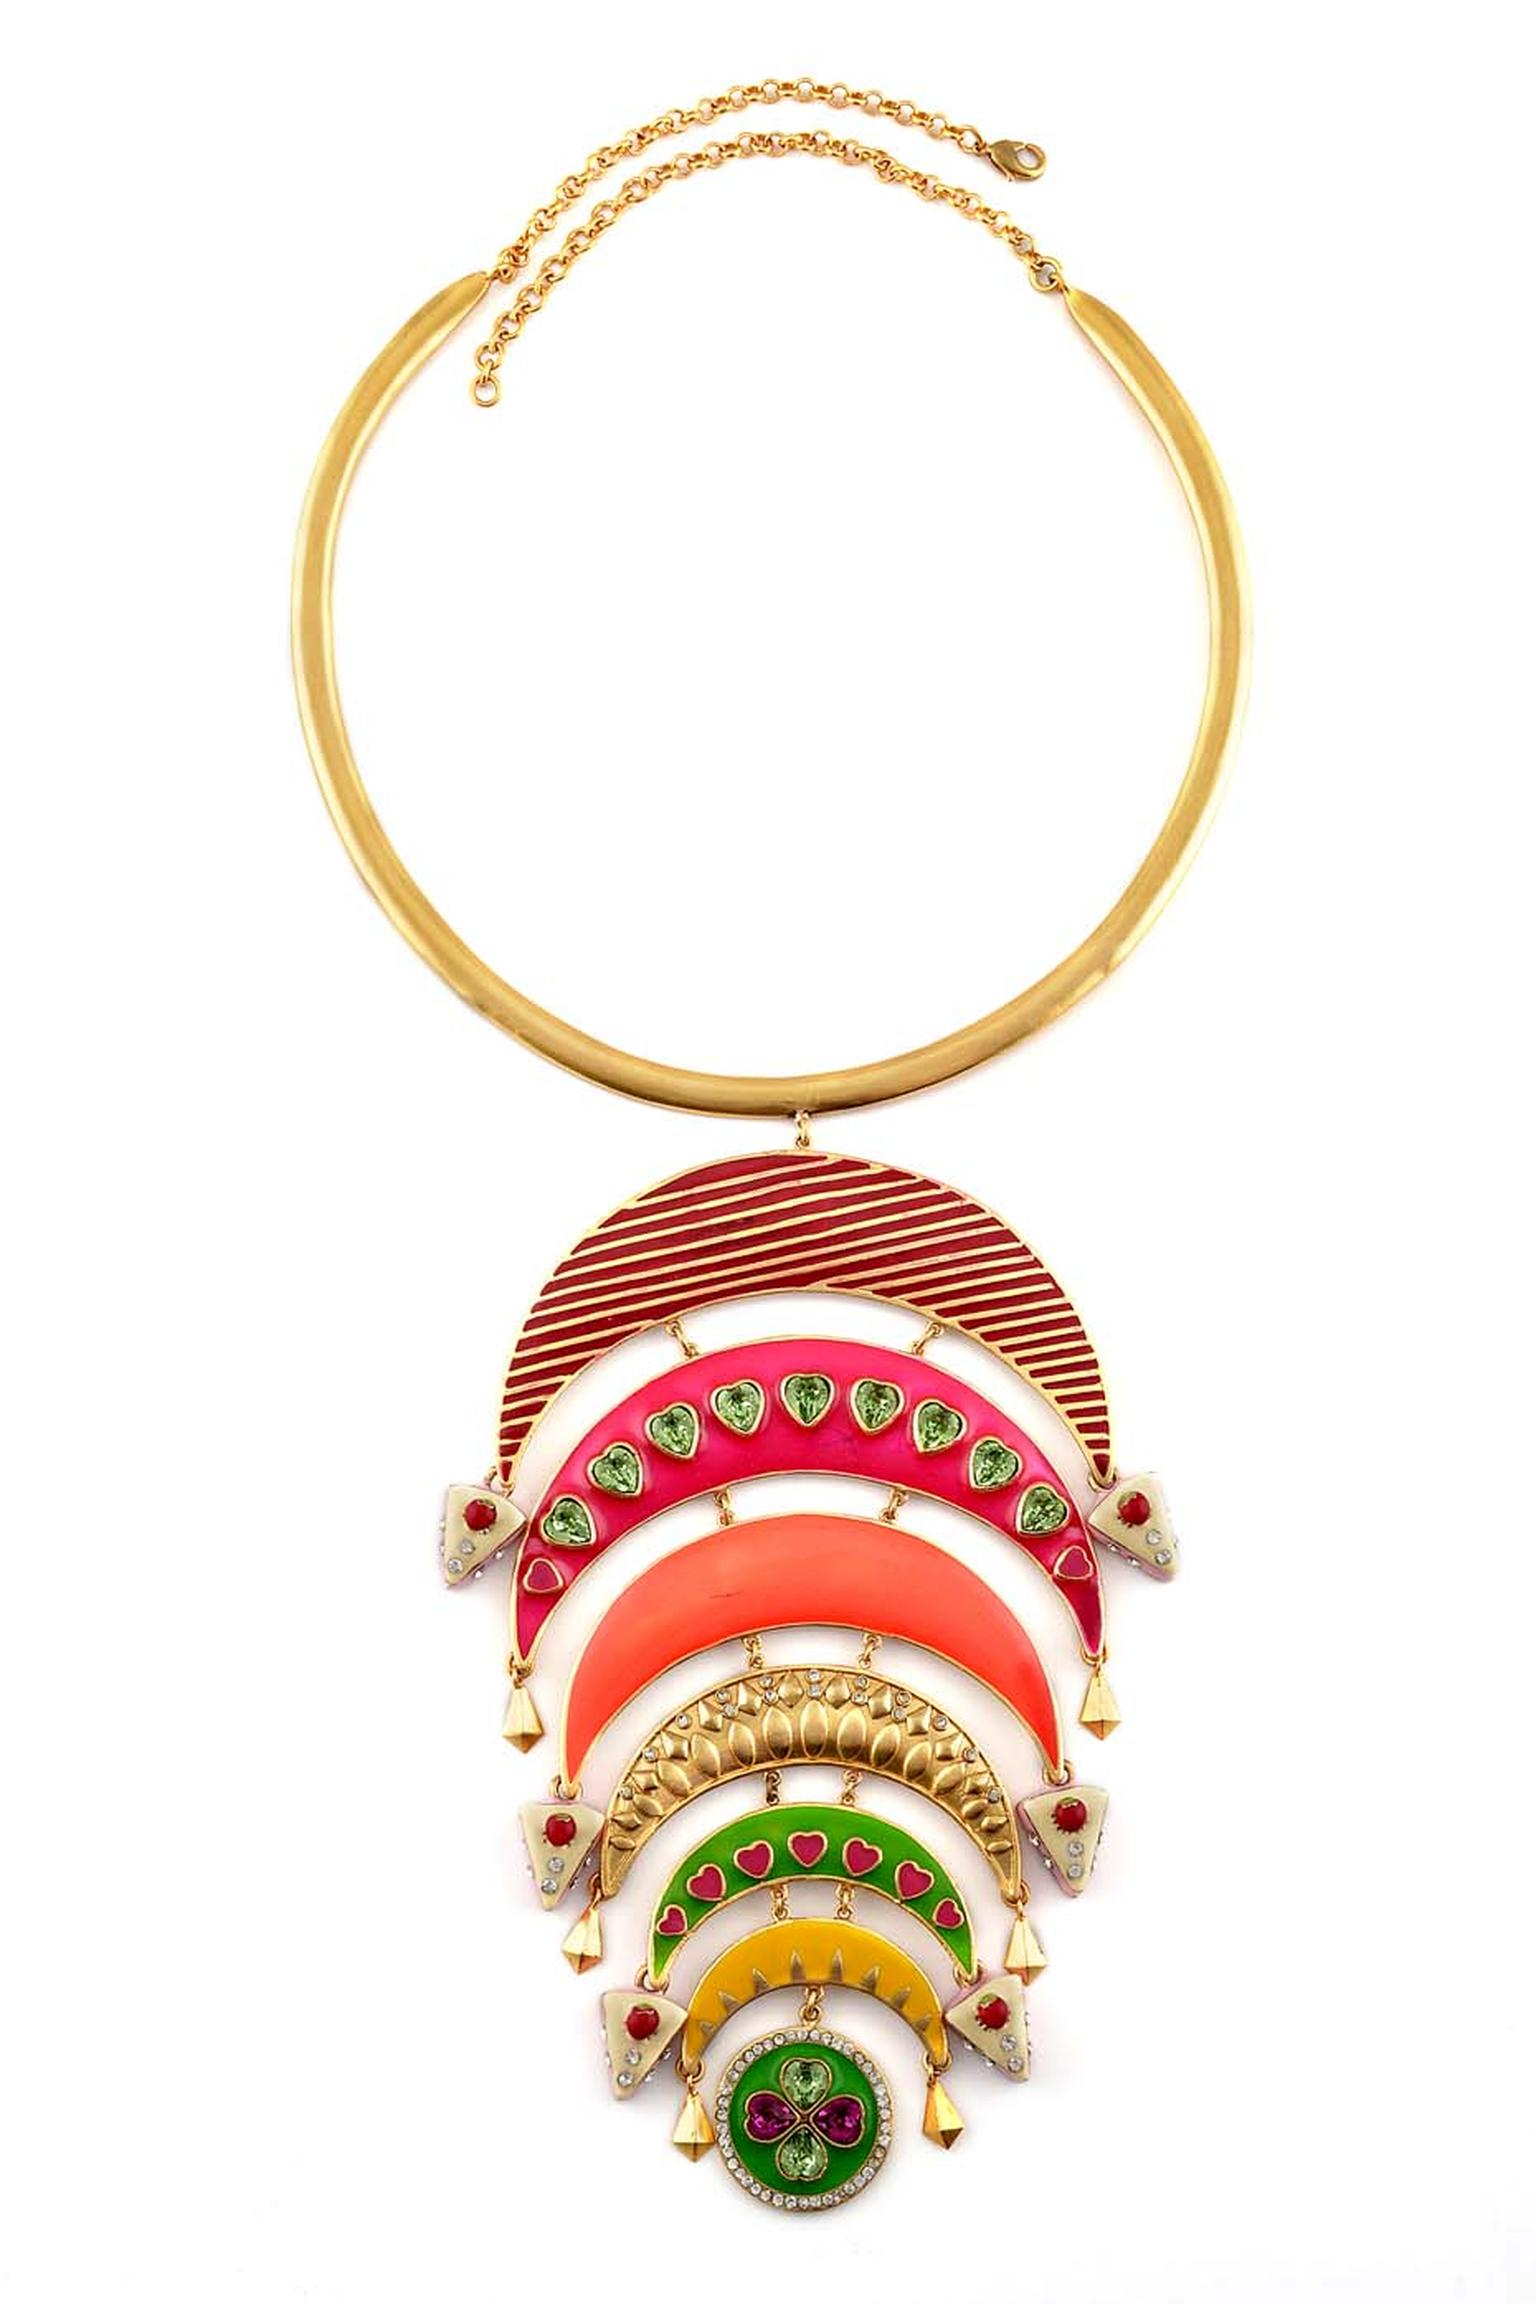 Amrapali and Manish Arora AW 2014-15 collection Jasper necklace.